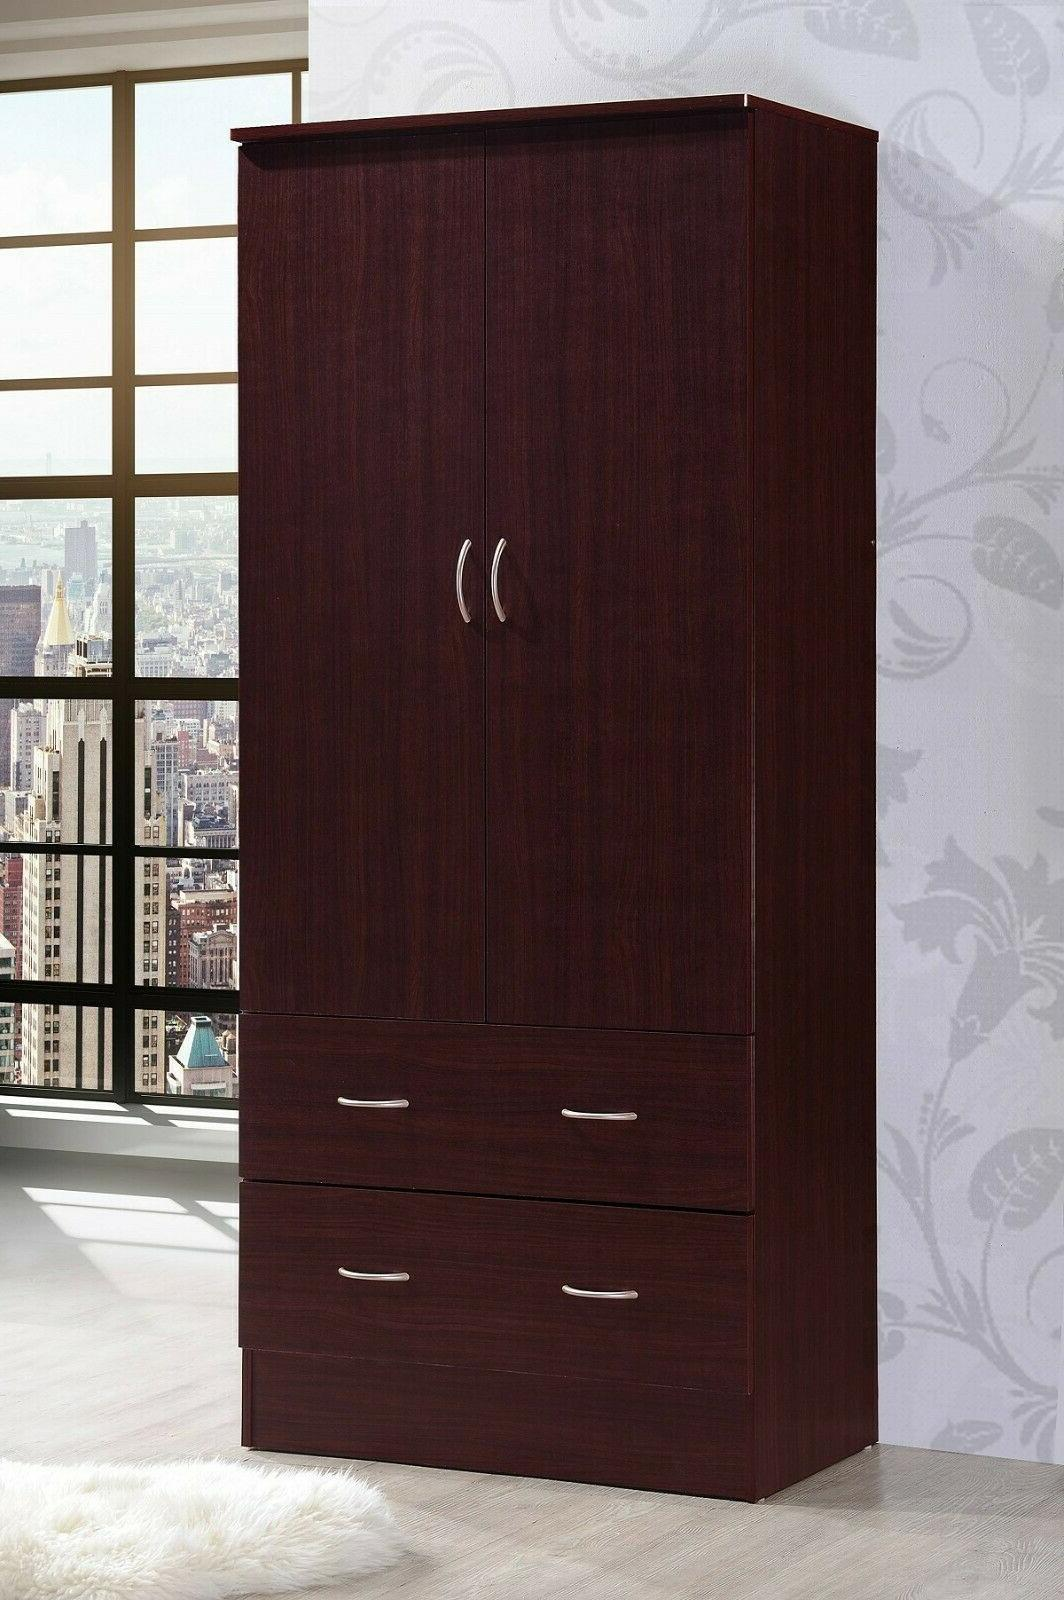 Bedroom Armoire 2-door 2-drawers Mahogany Wardrobe Storage C